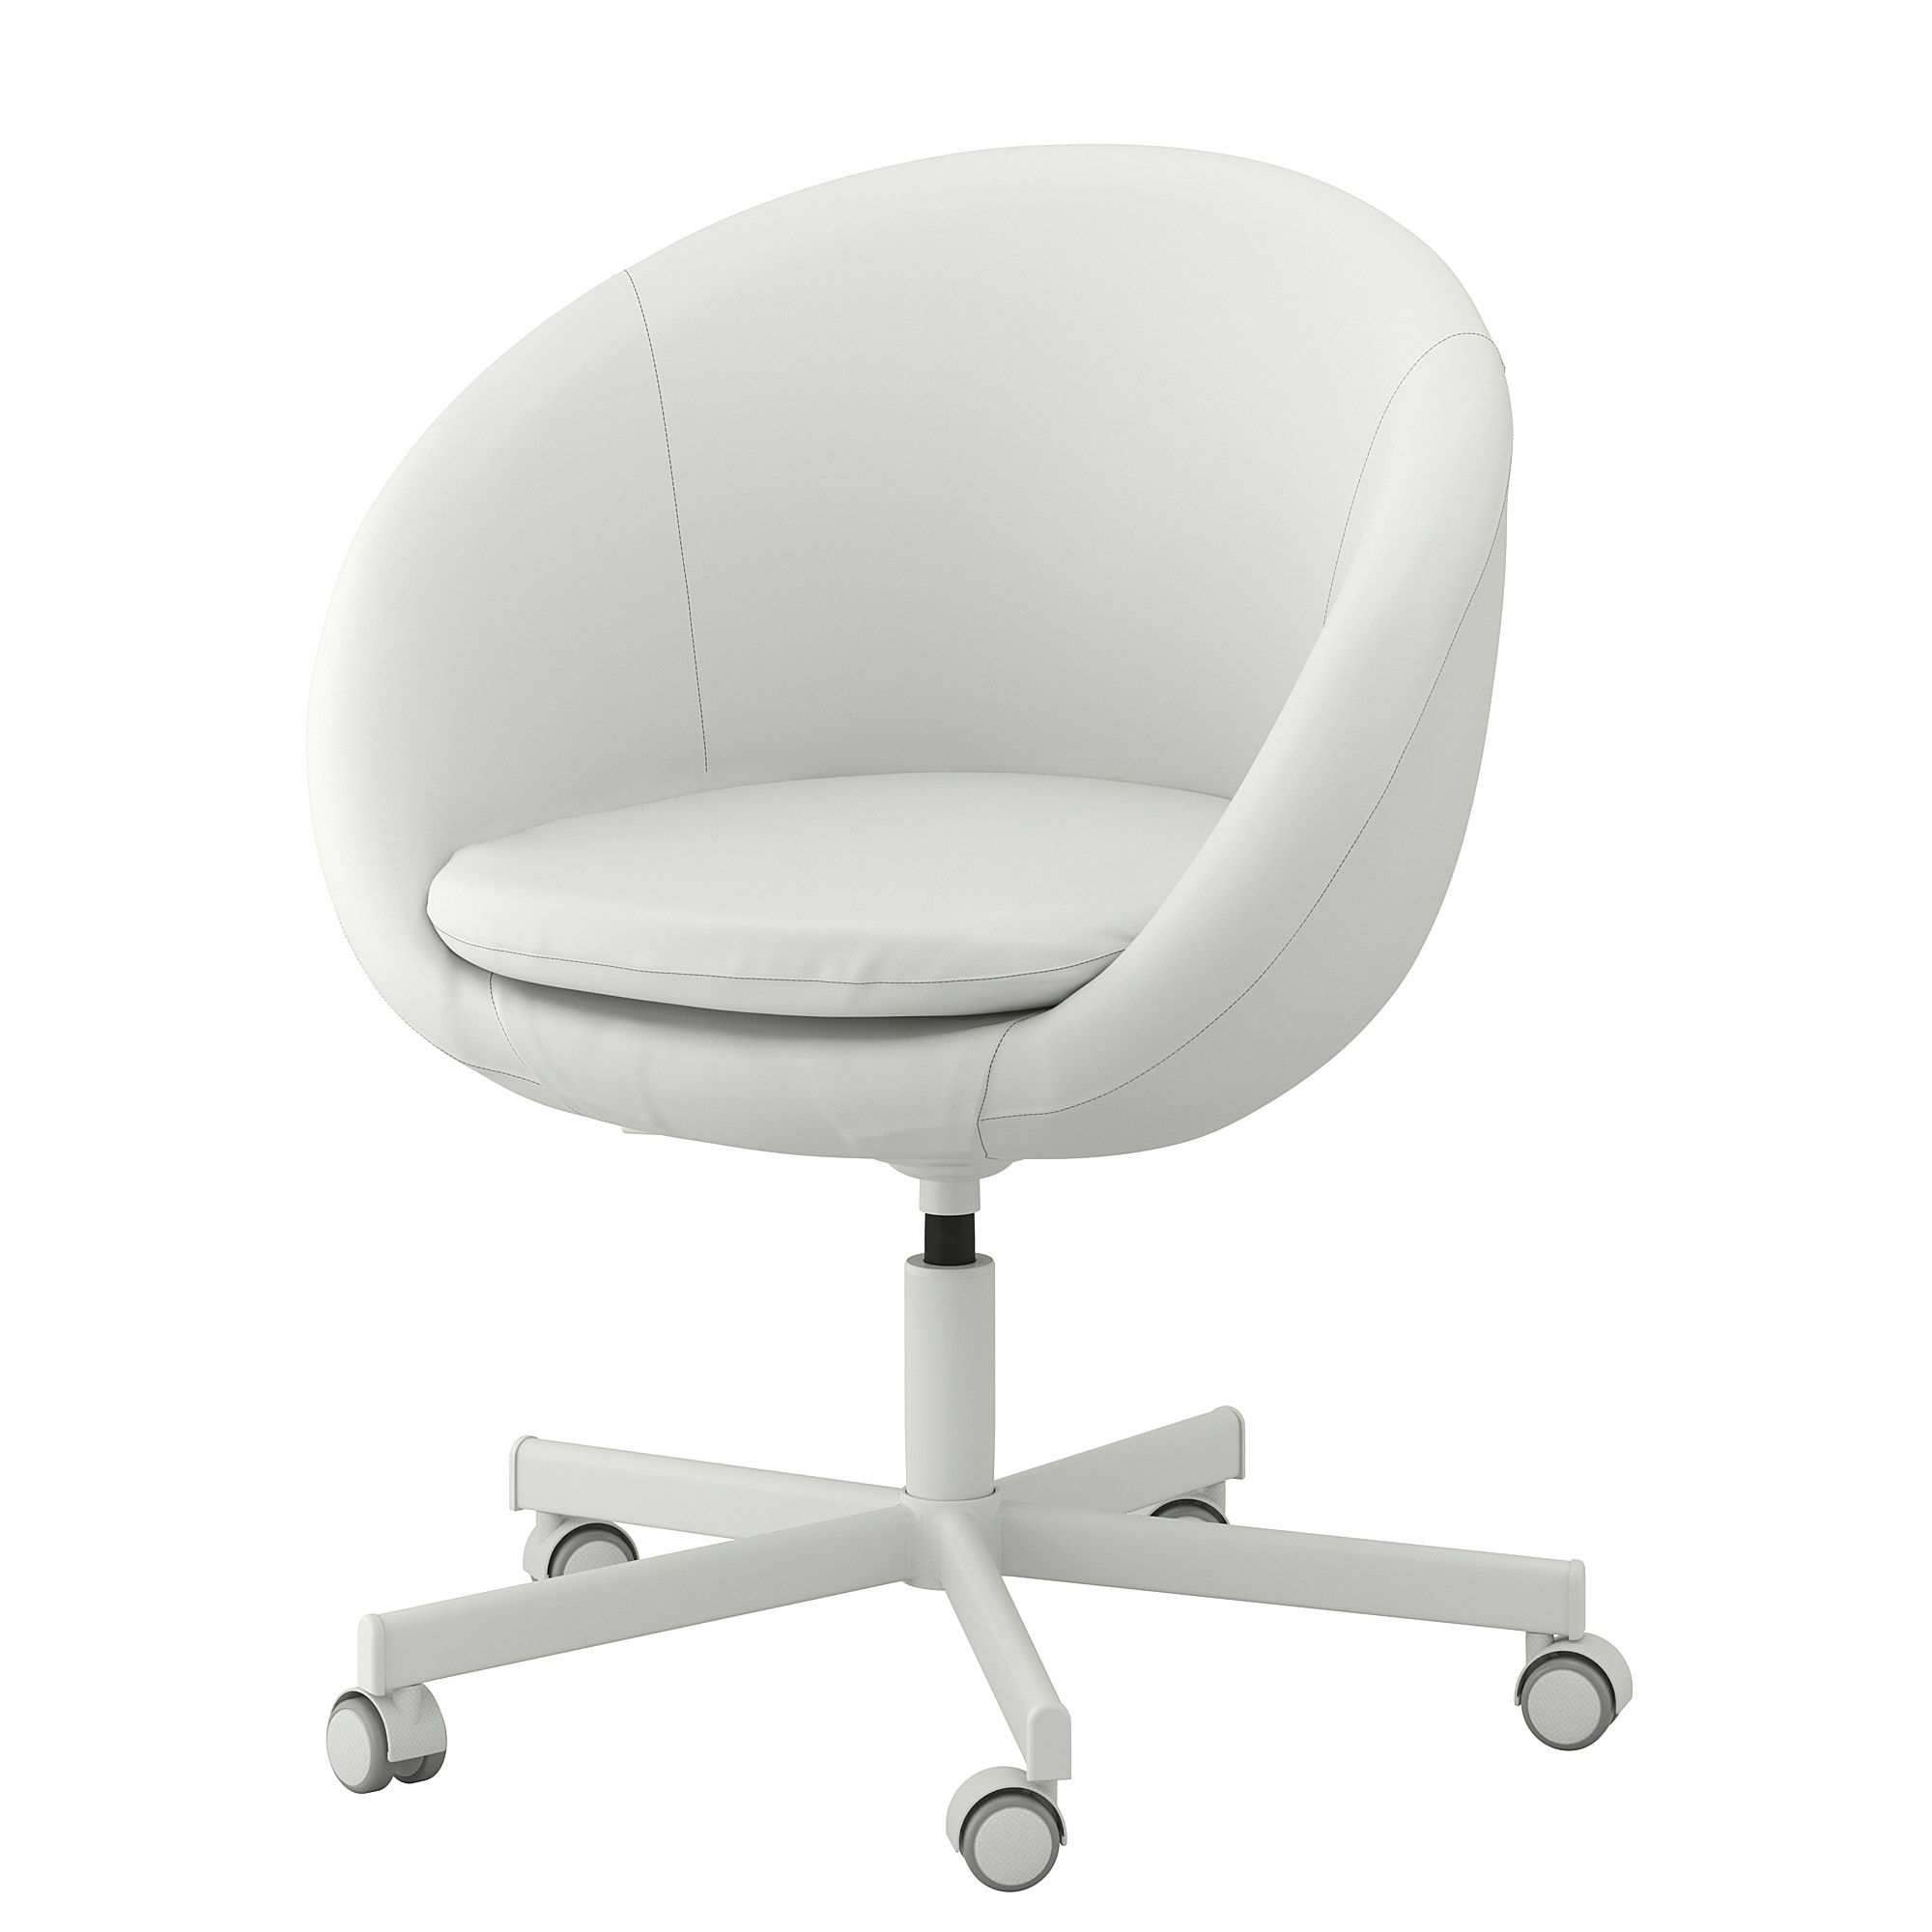 Pleasing Skruvsta Swivel Chair Ysane White In 2019 Swivel Chair Spiritservingveterans Wood Chair Design Ideas Spiritservingveteransorg